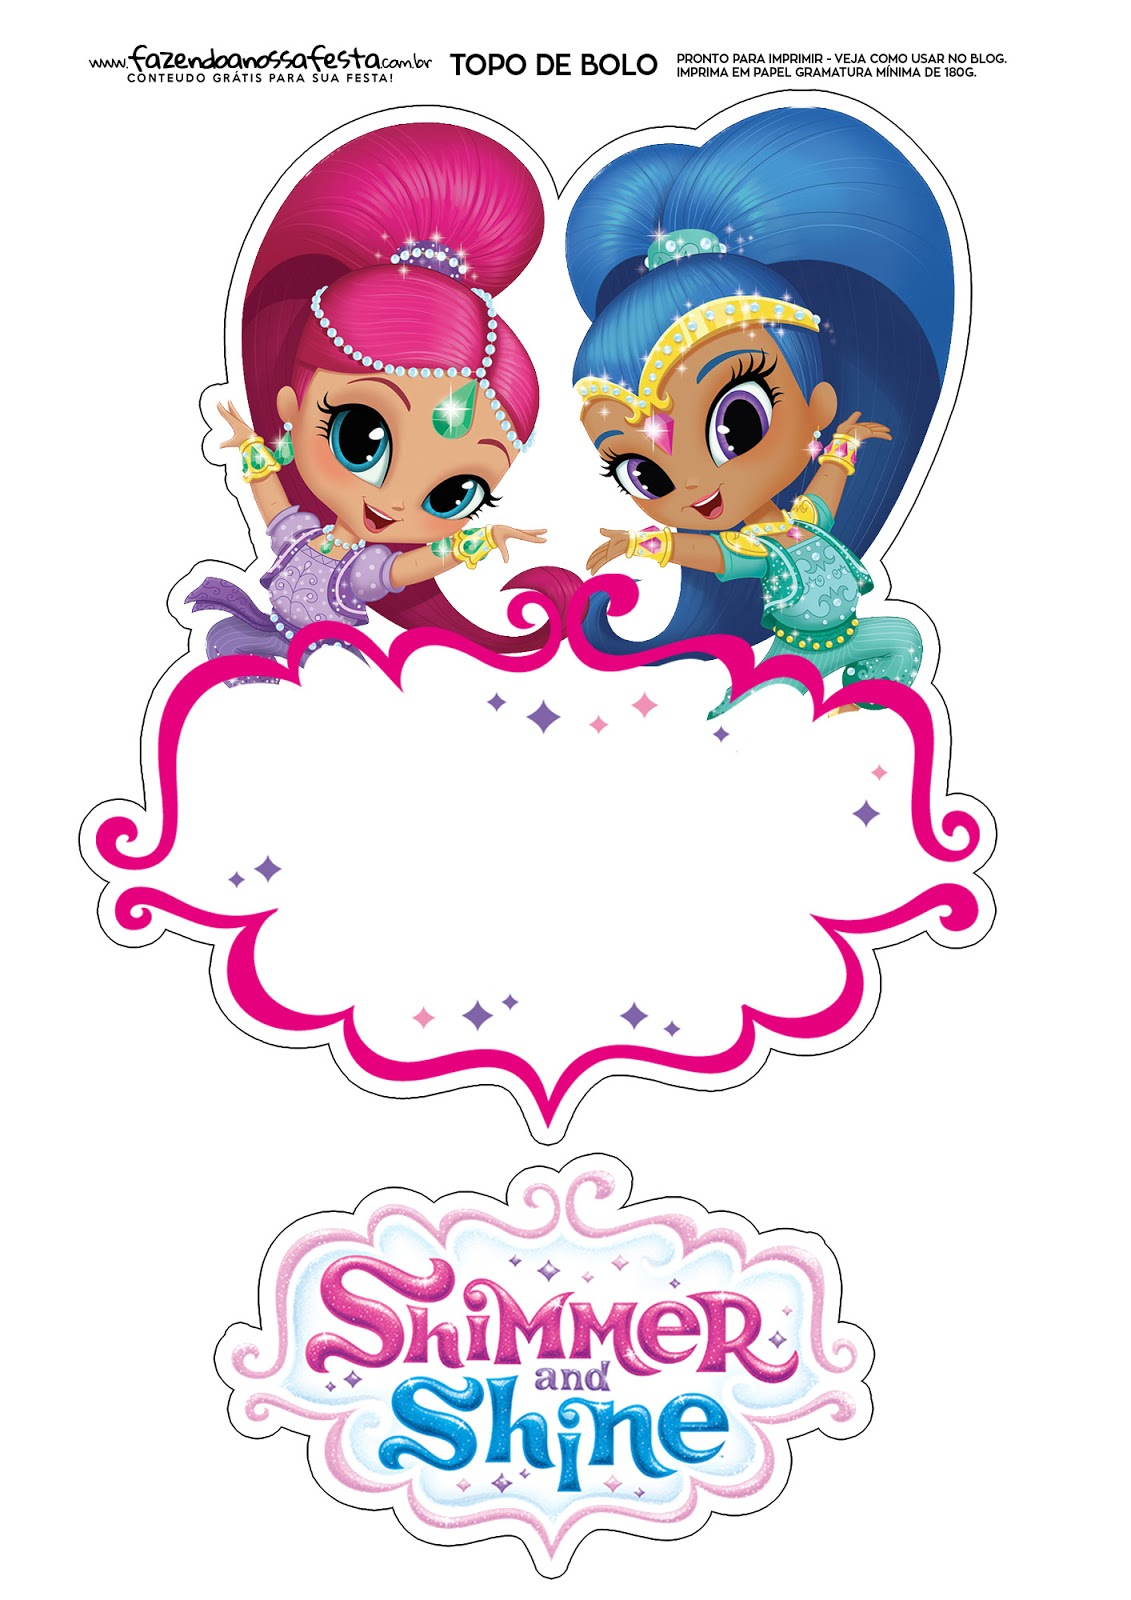 Shimmer And Shine Free Printable Cake Toppers Oh My Fiesta In English